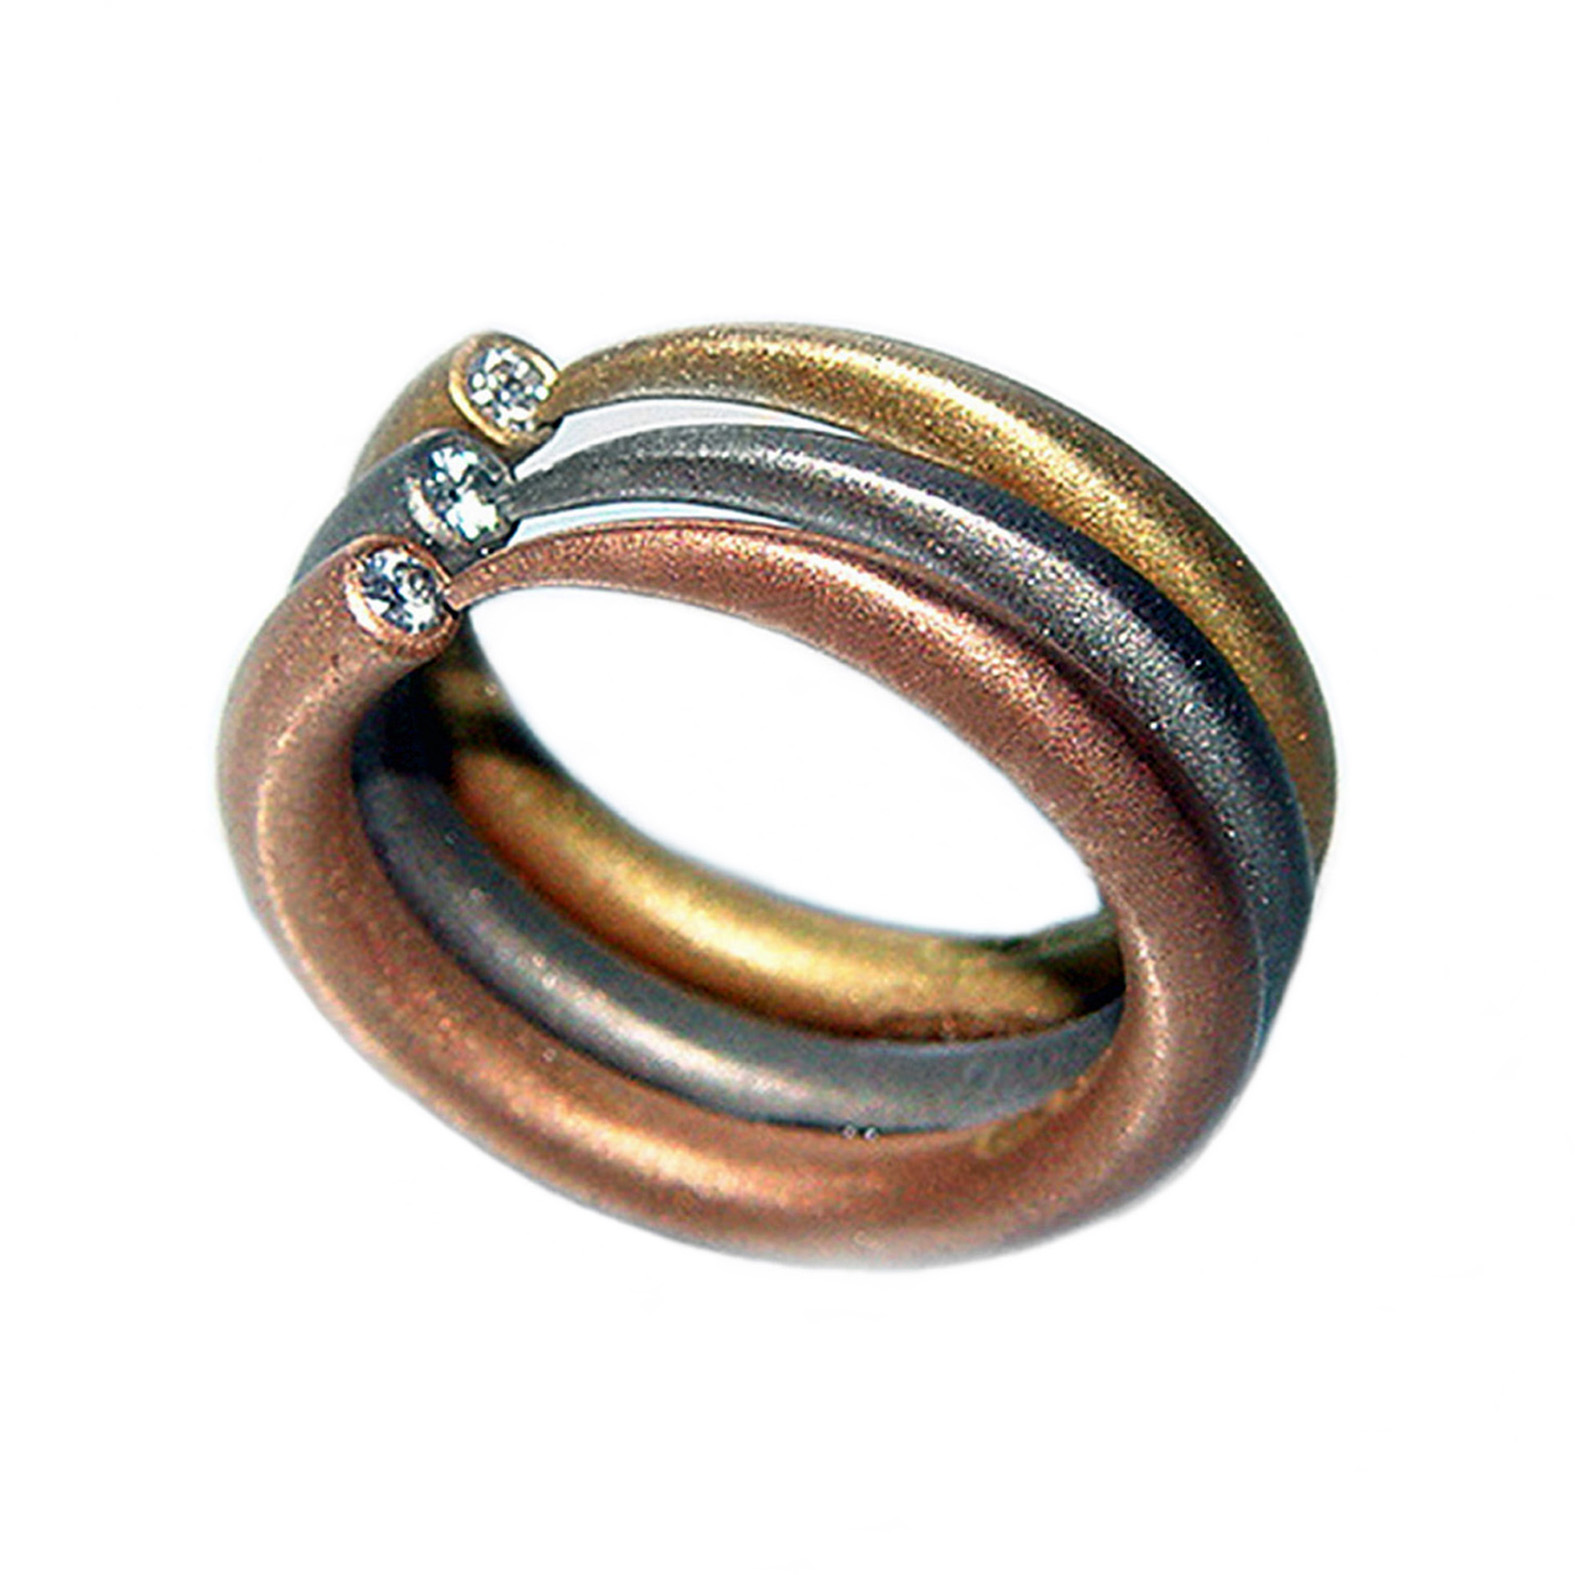 Paul Finch Jewellery 18ct narrow wiggly ring with diamond